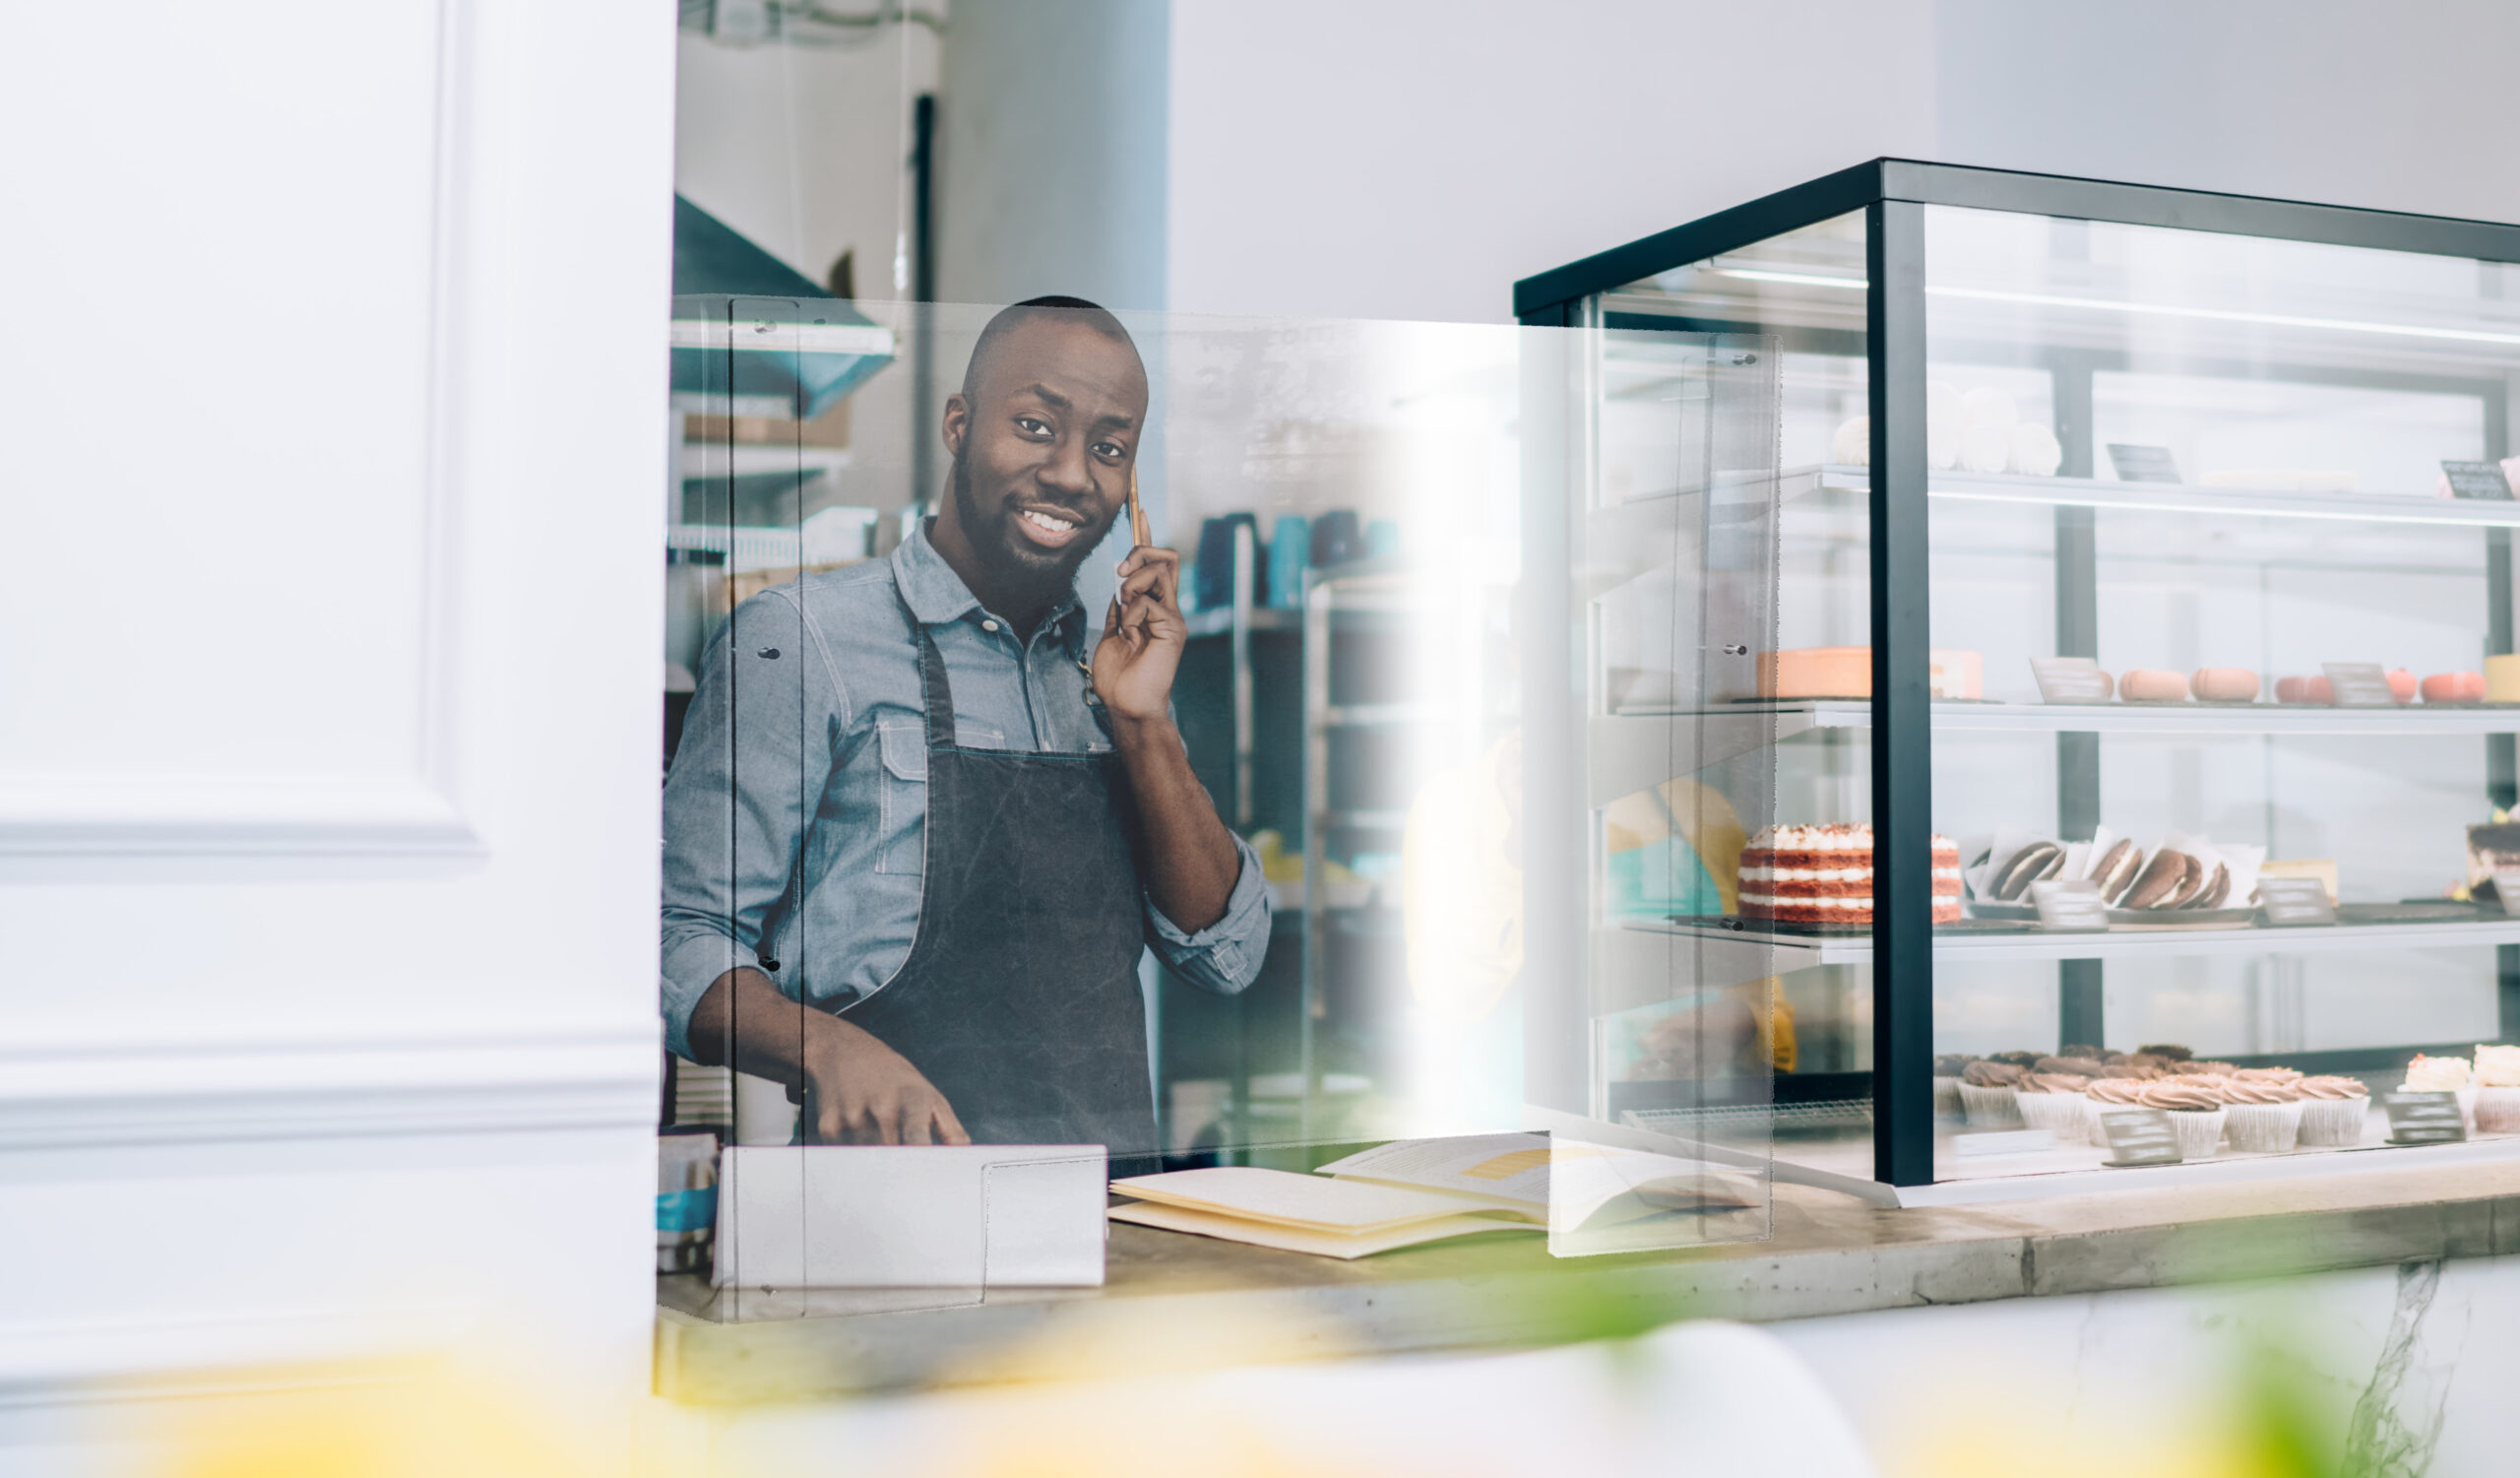 Image of a man behind a bakery countertop, smiling with a cellphone. He is behind a countertop plastic shield.